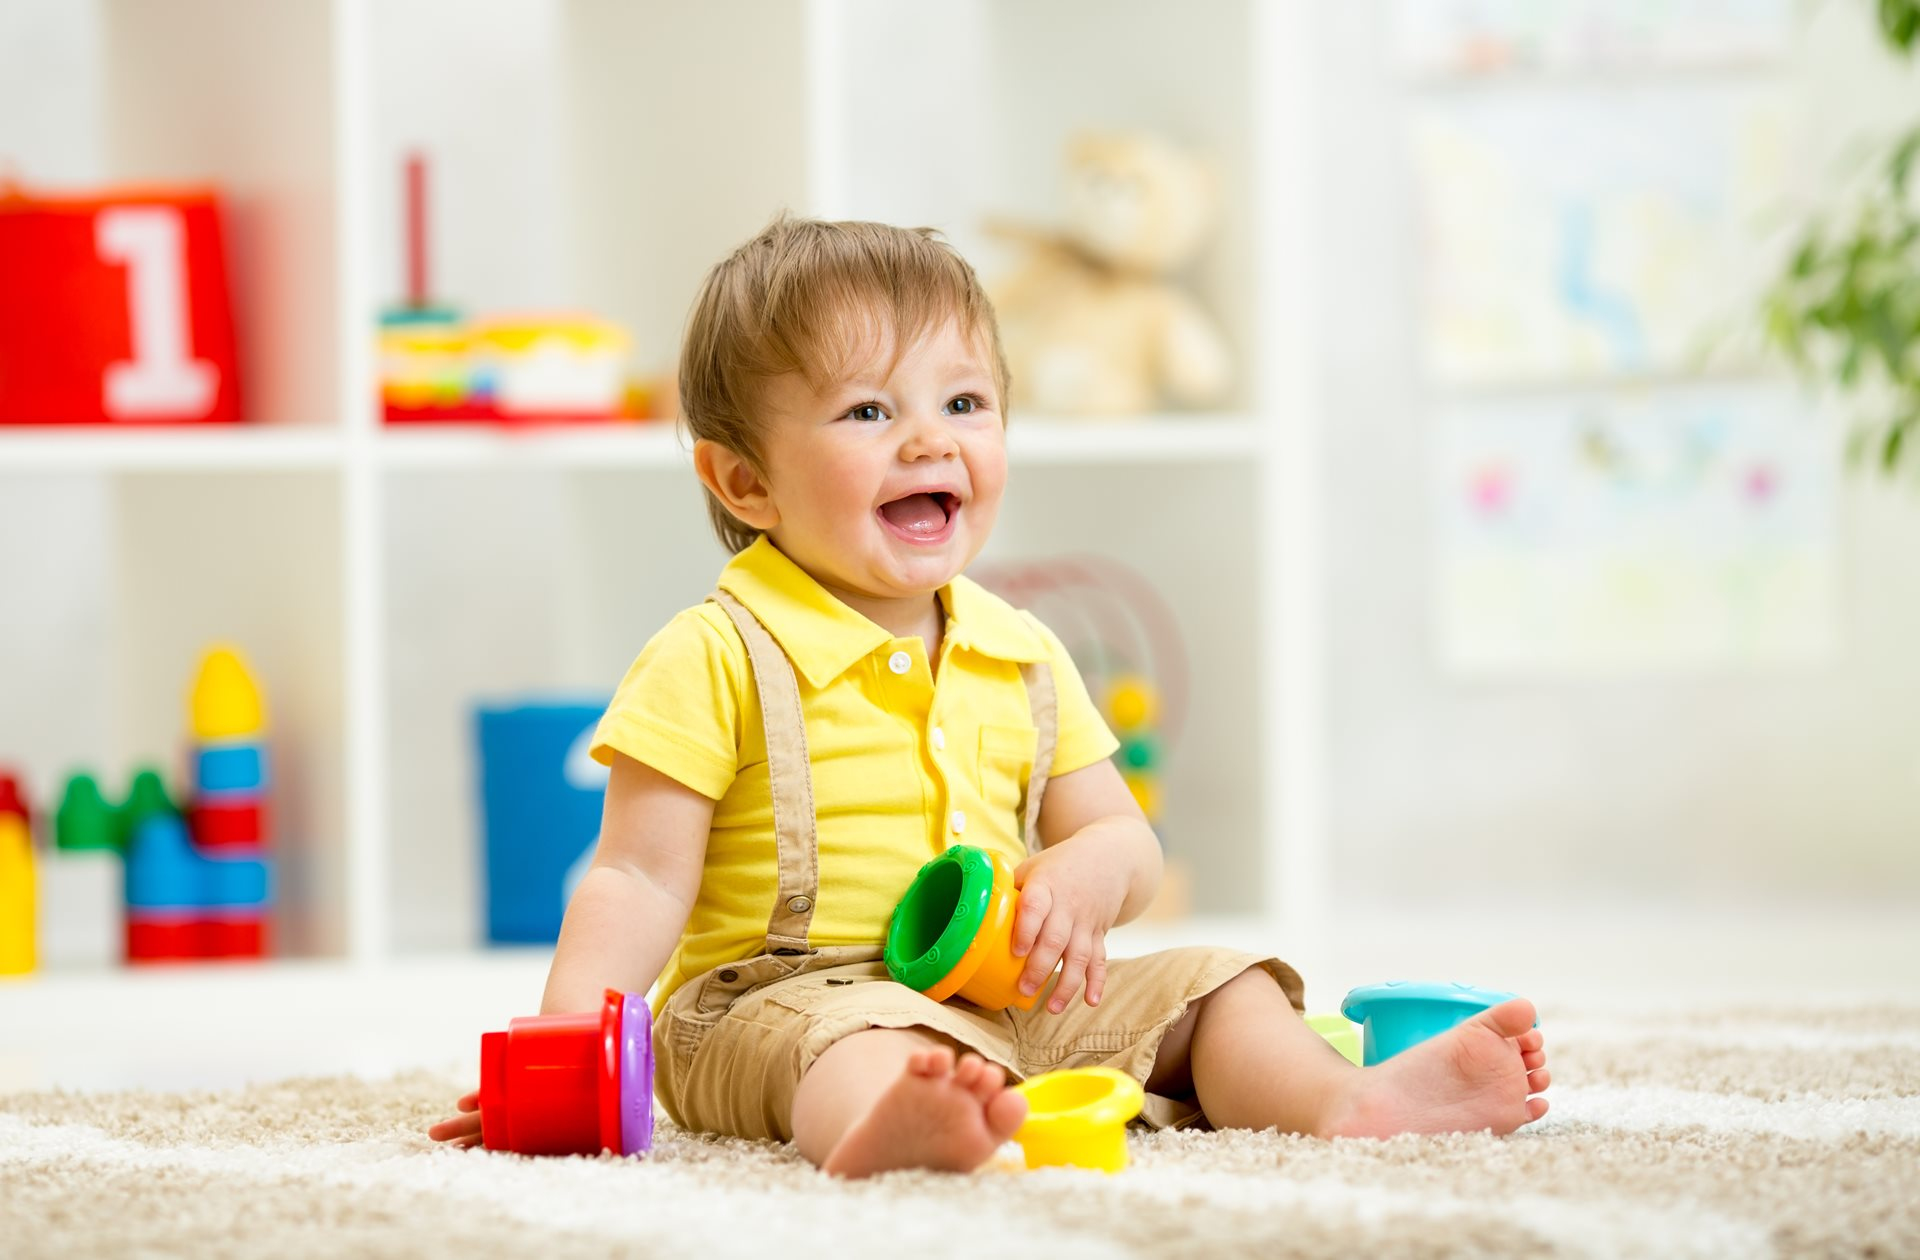 Infant baby sitting learning in early childhood education childcare centre